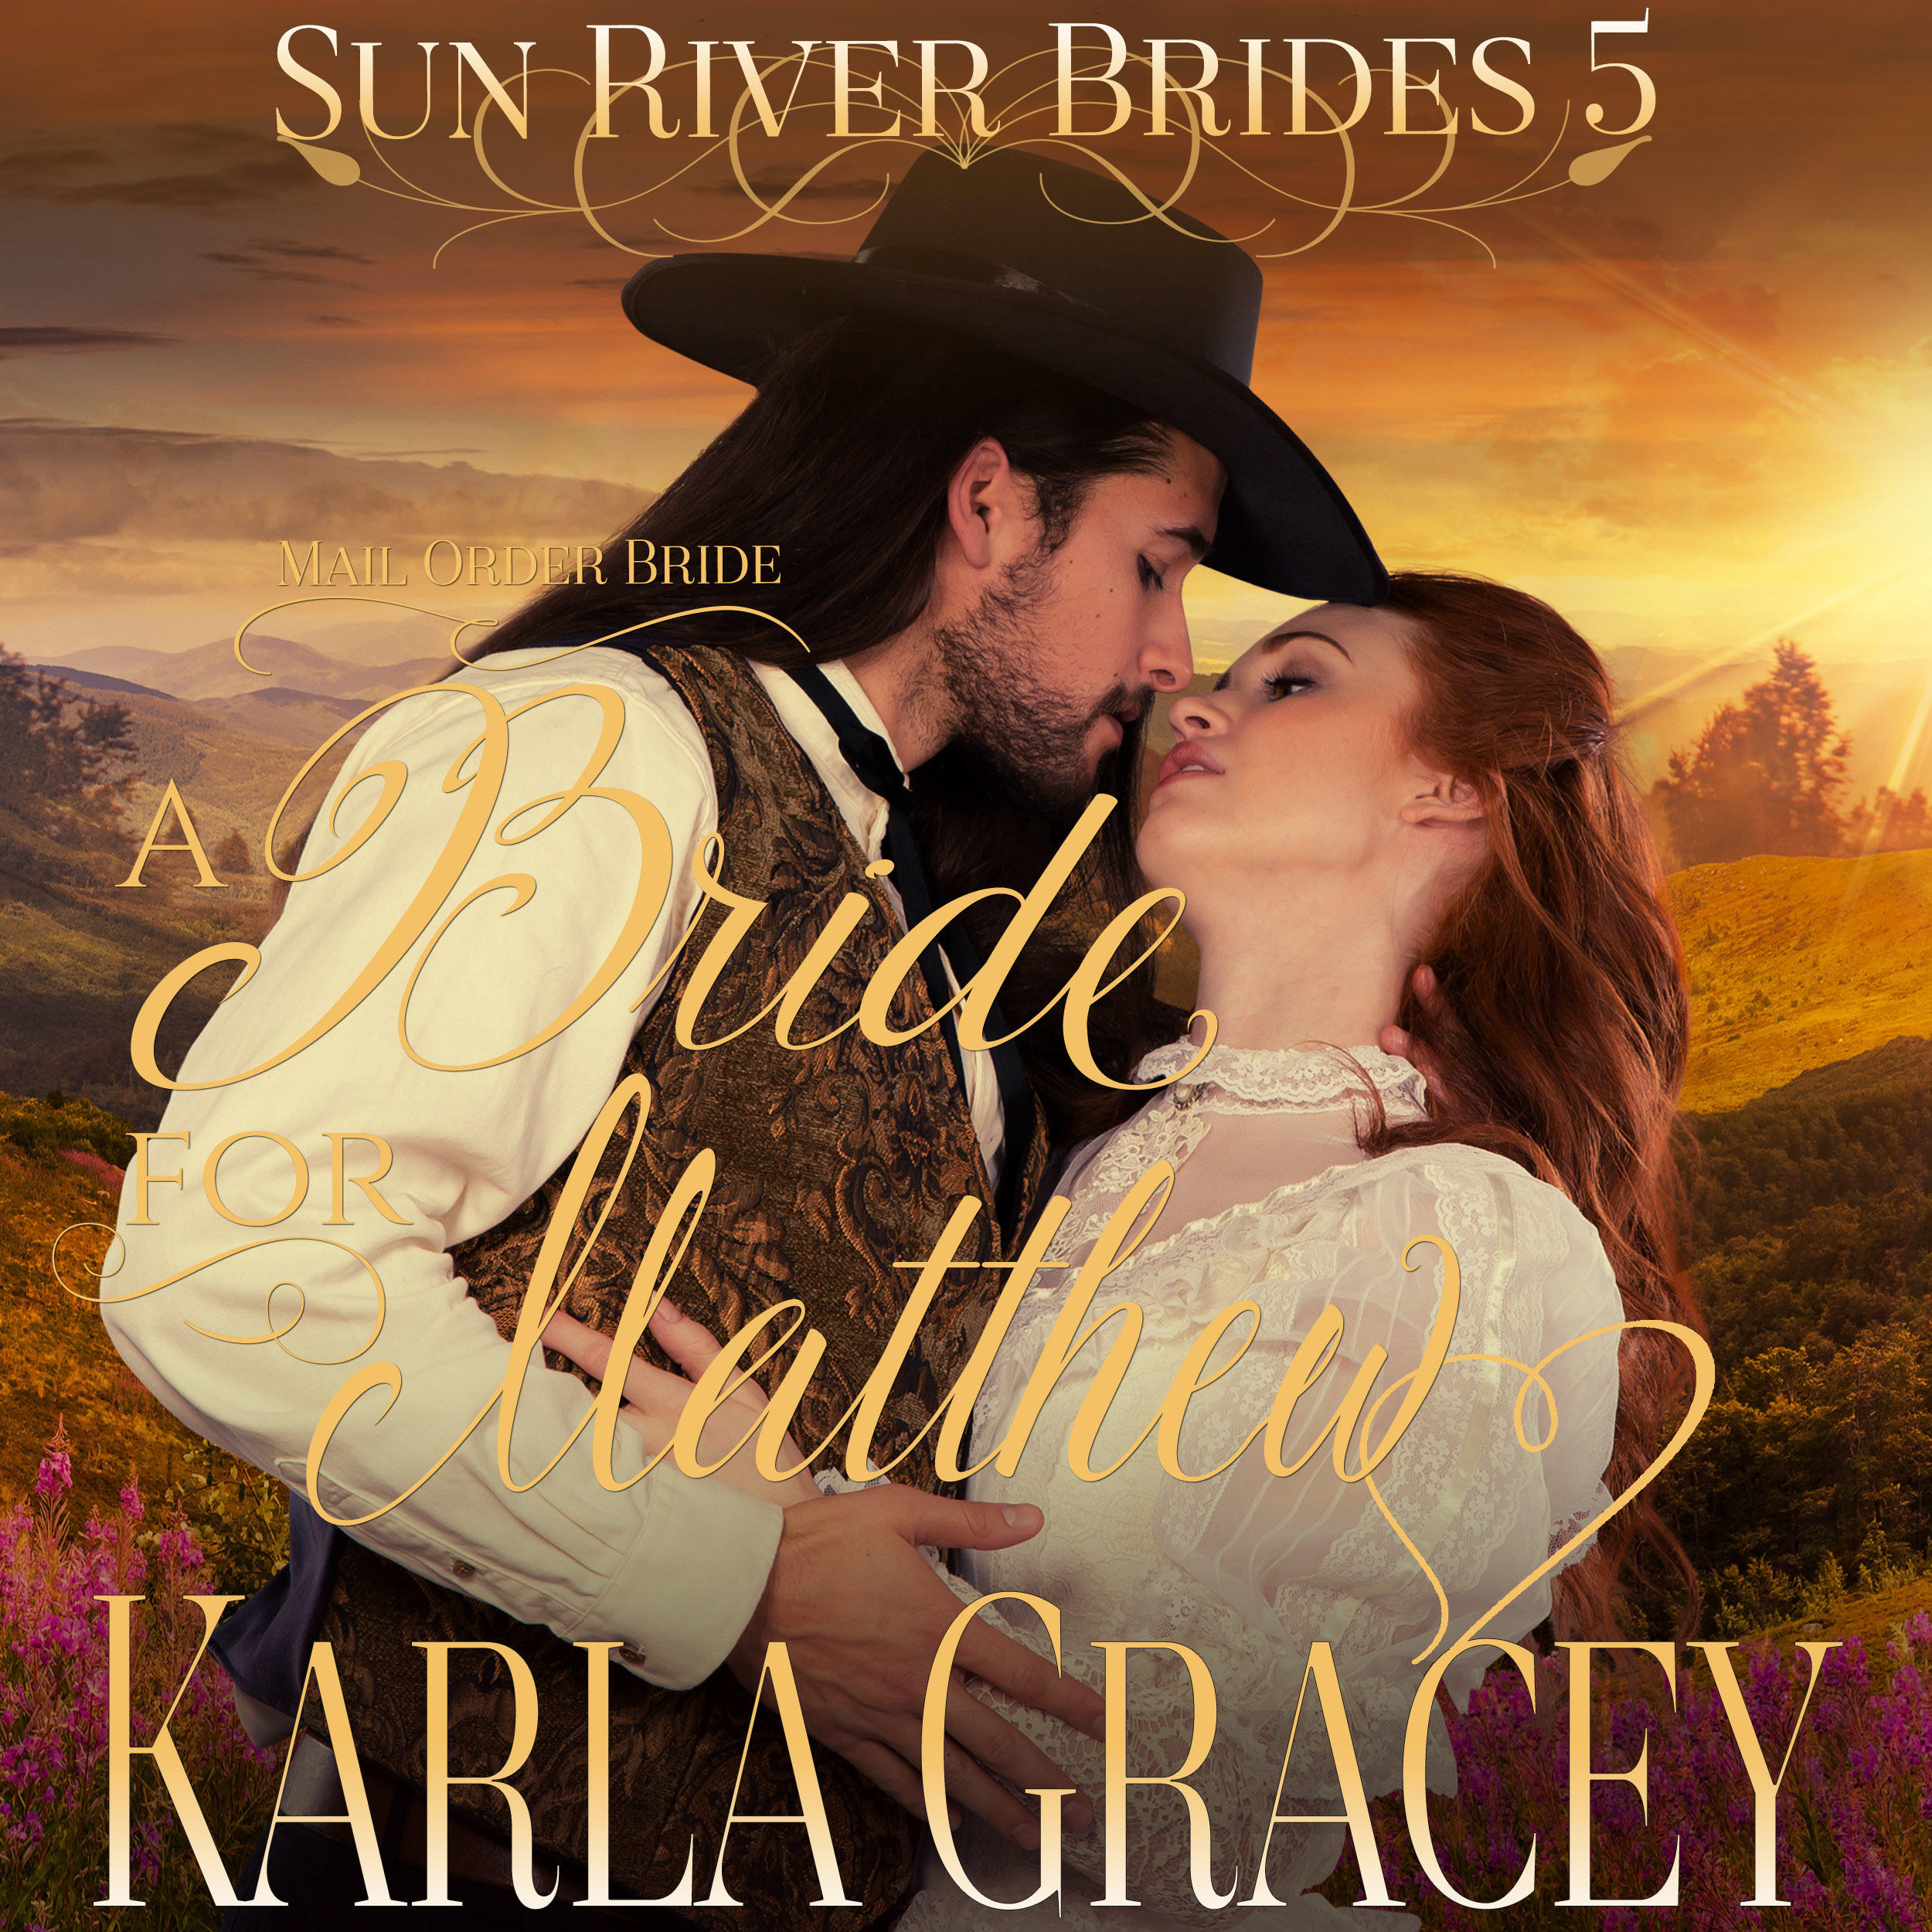 Printable Mail Order Bride - A Bride for Matthew  Audiobook Cover Art